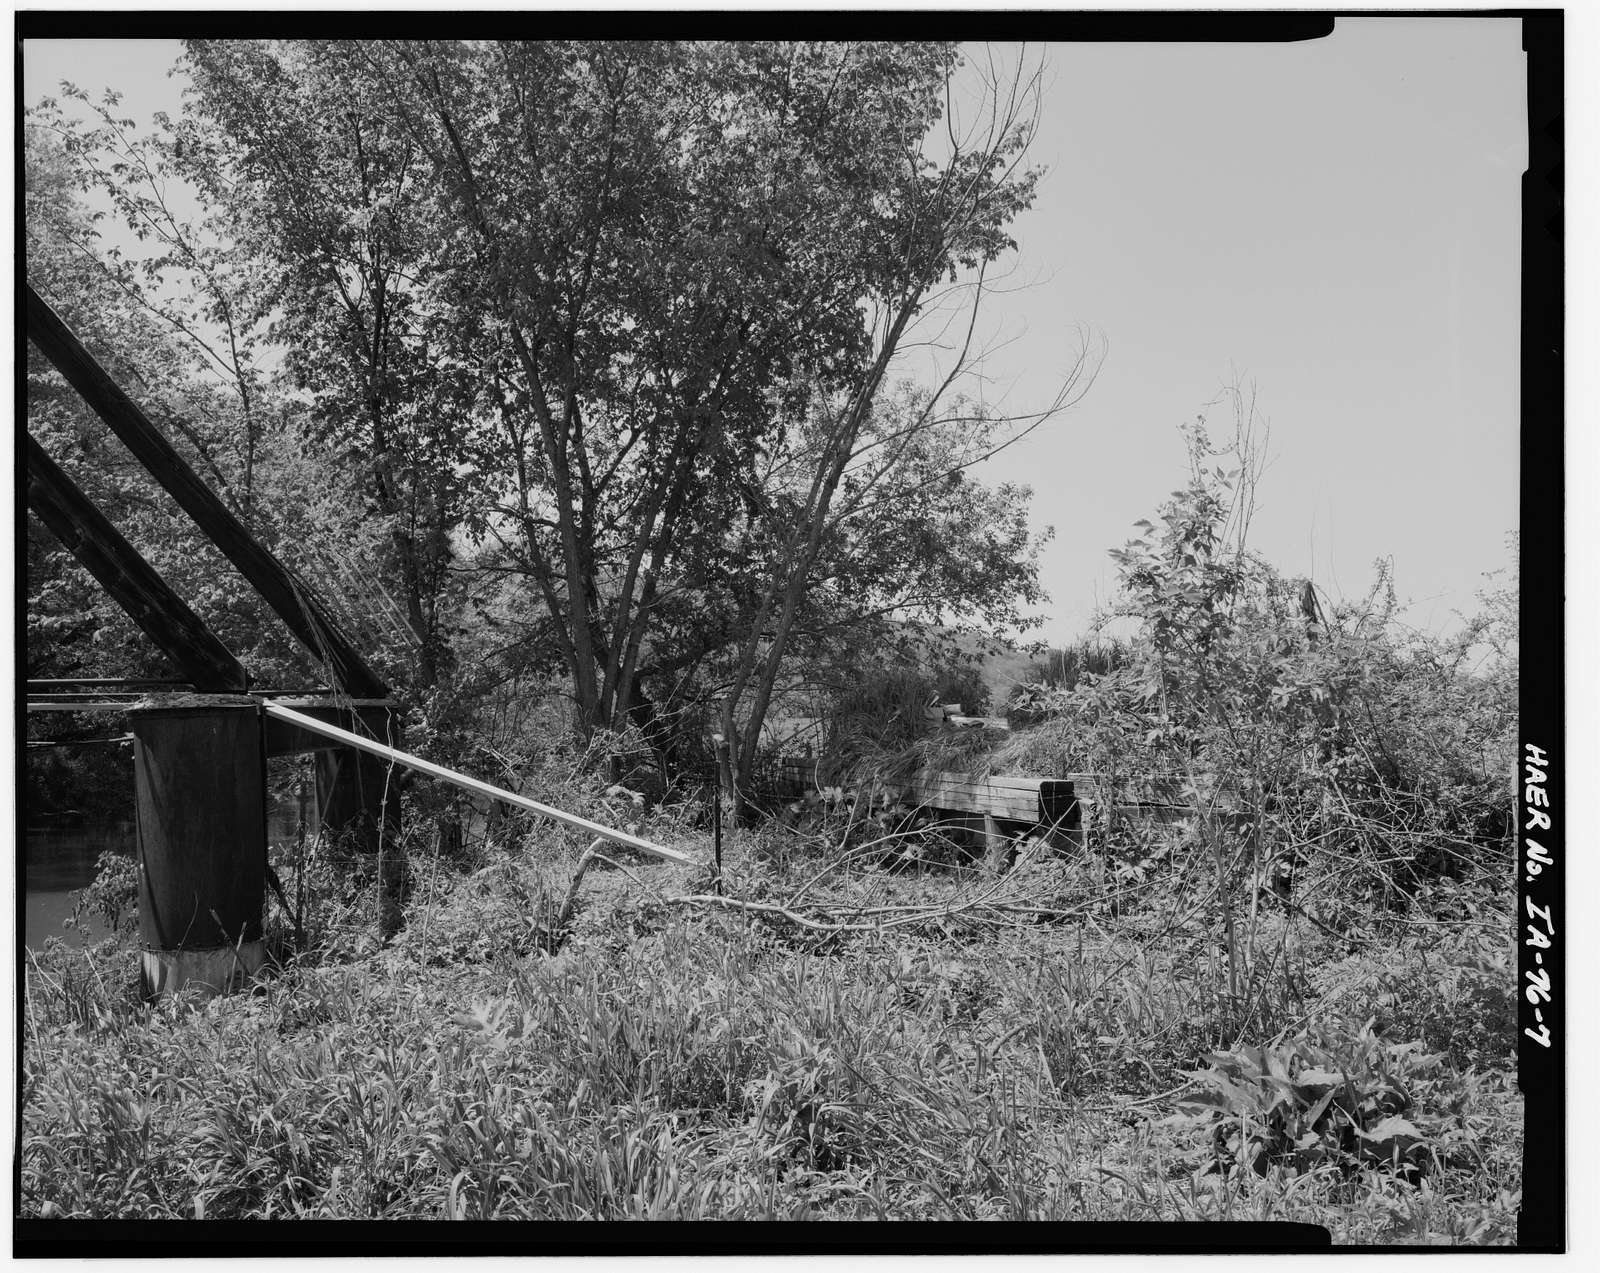 Red Bridge, Spanning Yellow river at abandoned county road, 7.3 miles northeast of Postville, Postville, Allamakee County, IA